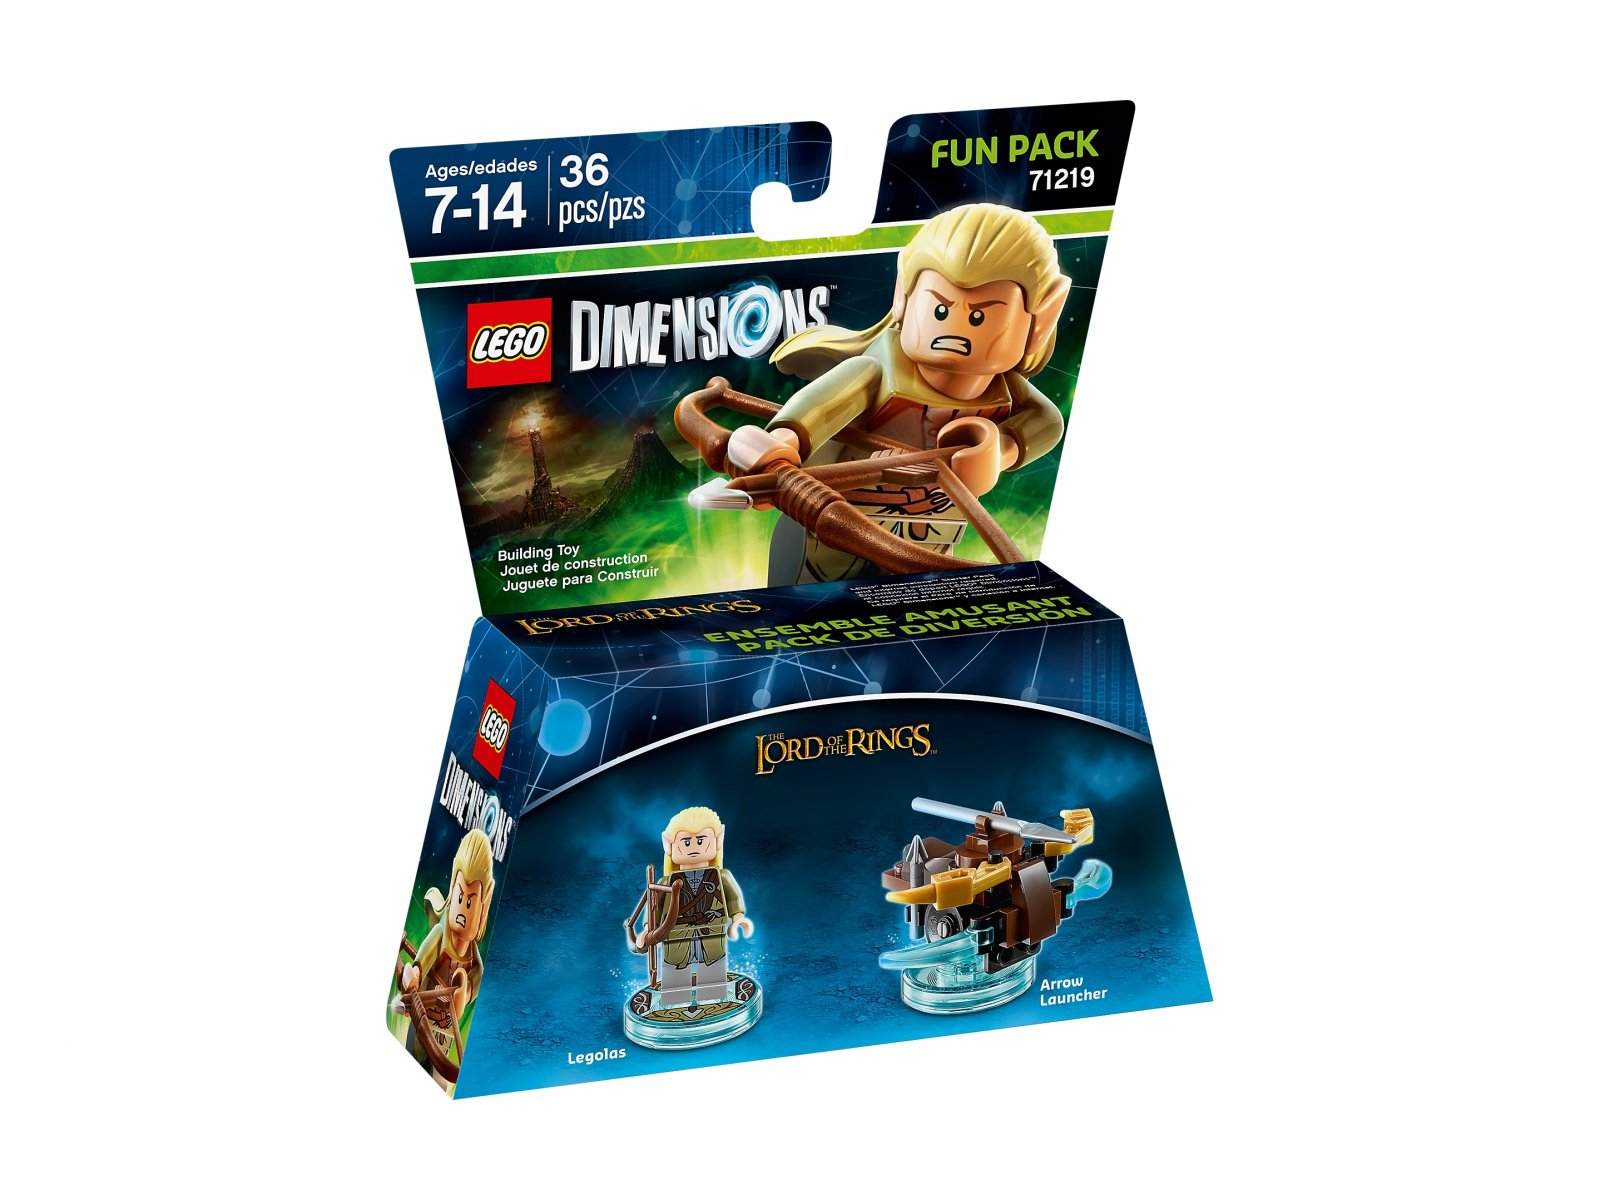 LEGO Dimensions™ 71219 Legolas™ Fun Pack